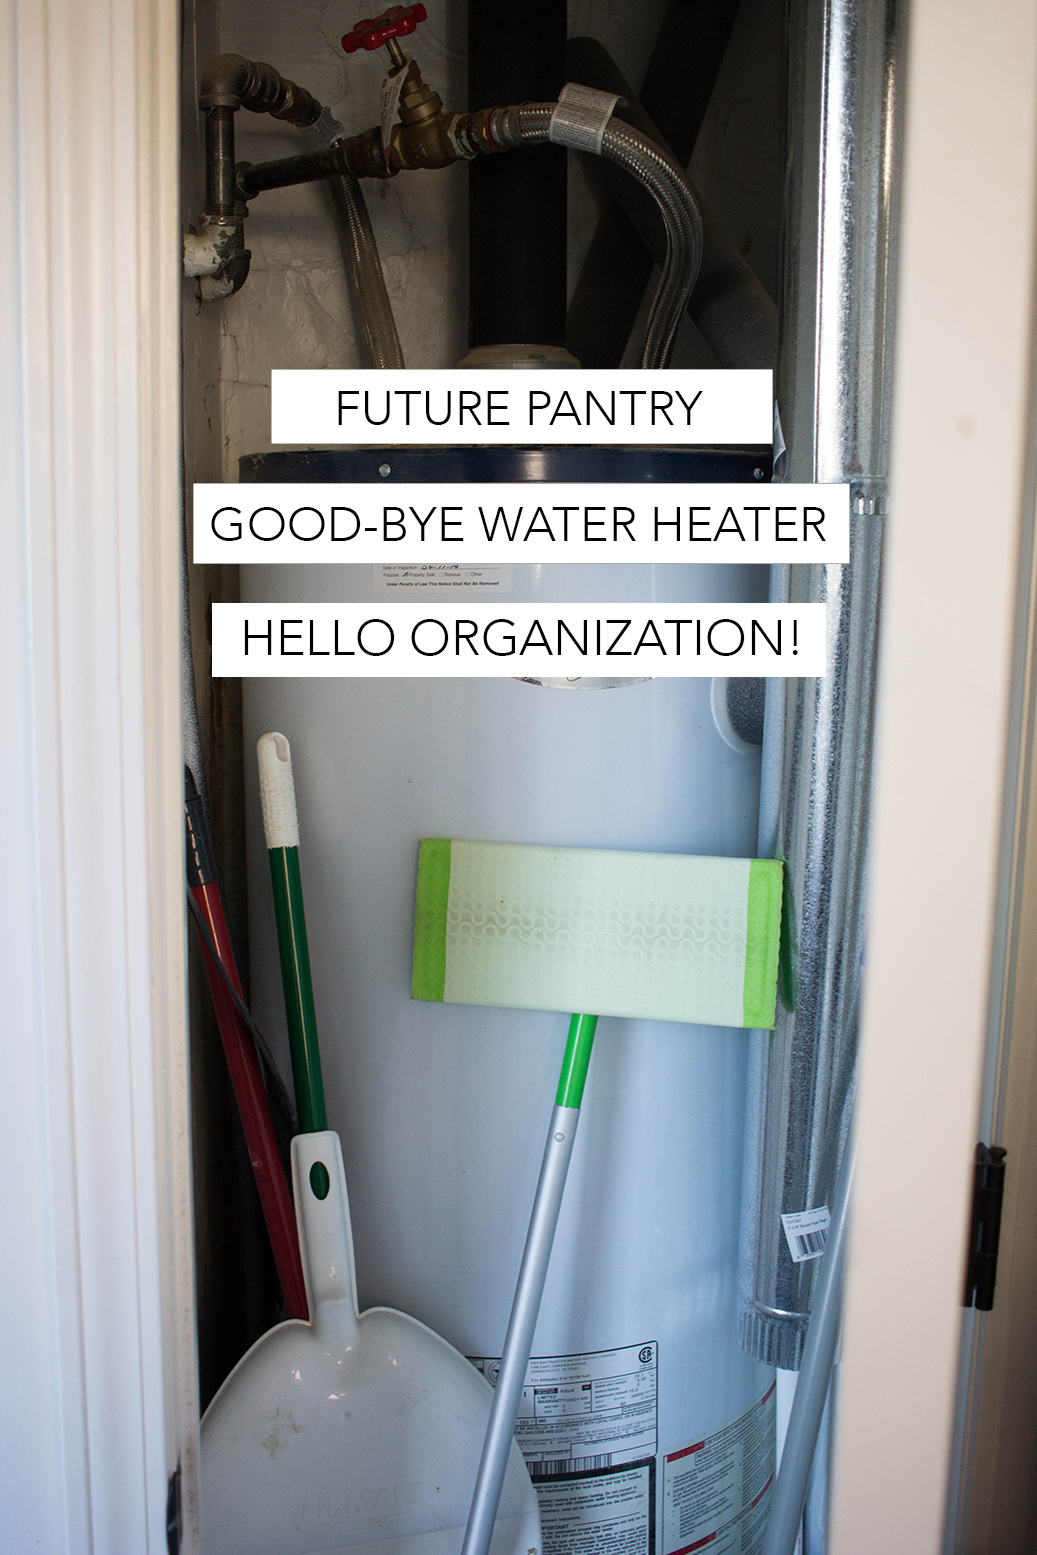 6  Build A Pantry Out Of Old Water Heater Closet  This Project Will Also  Come Along With Adding A Master Bathroom Since We Will Be Replacing Our  Water ...